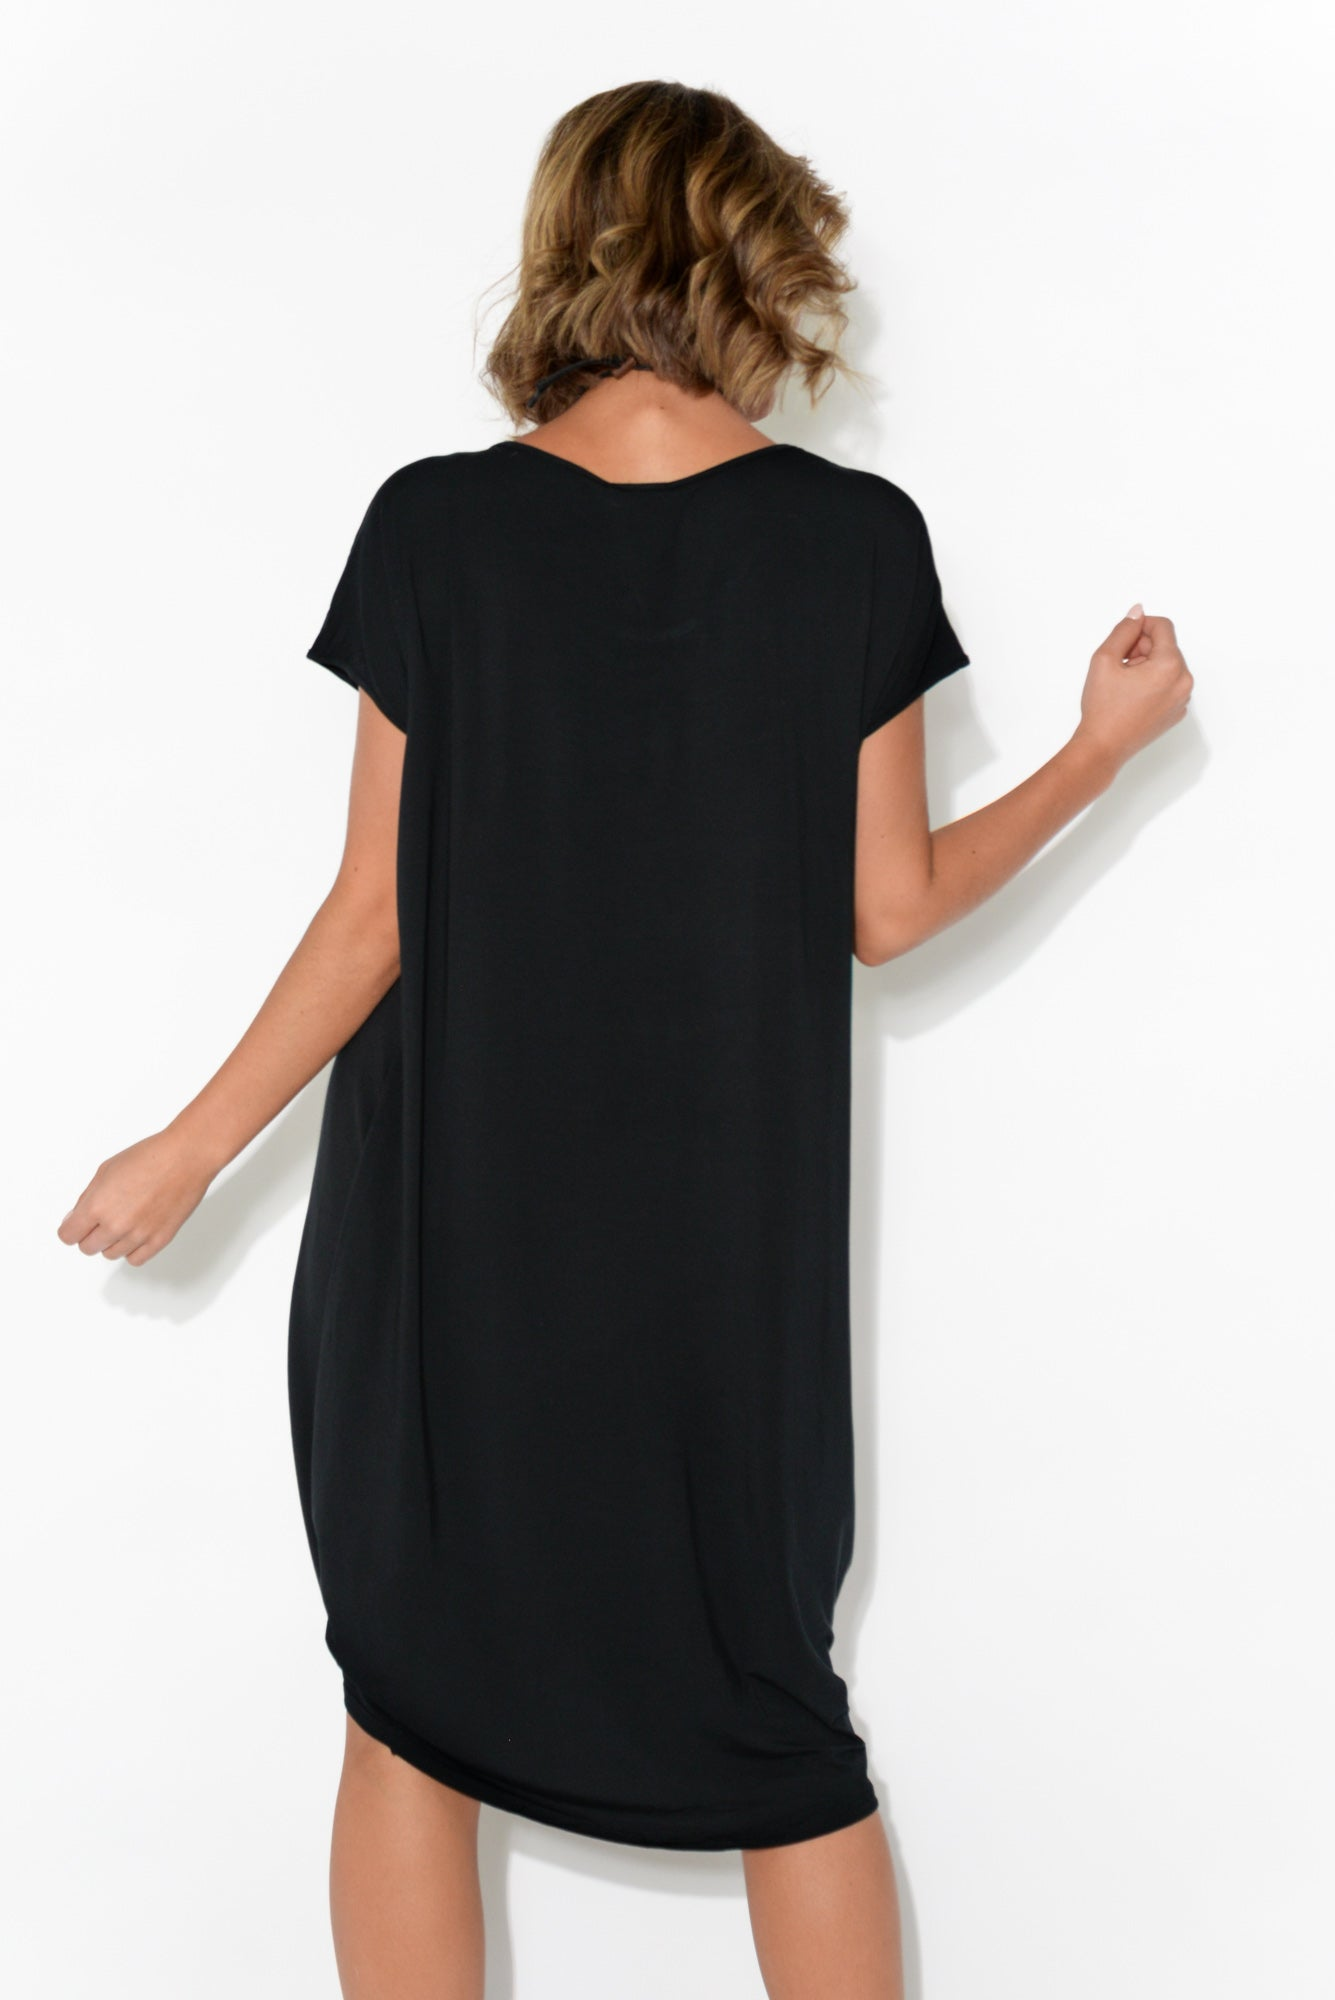 Tulip Black Modal Drape Dress